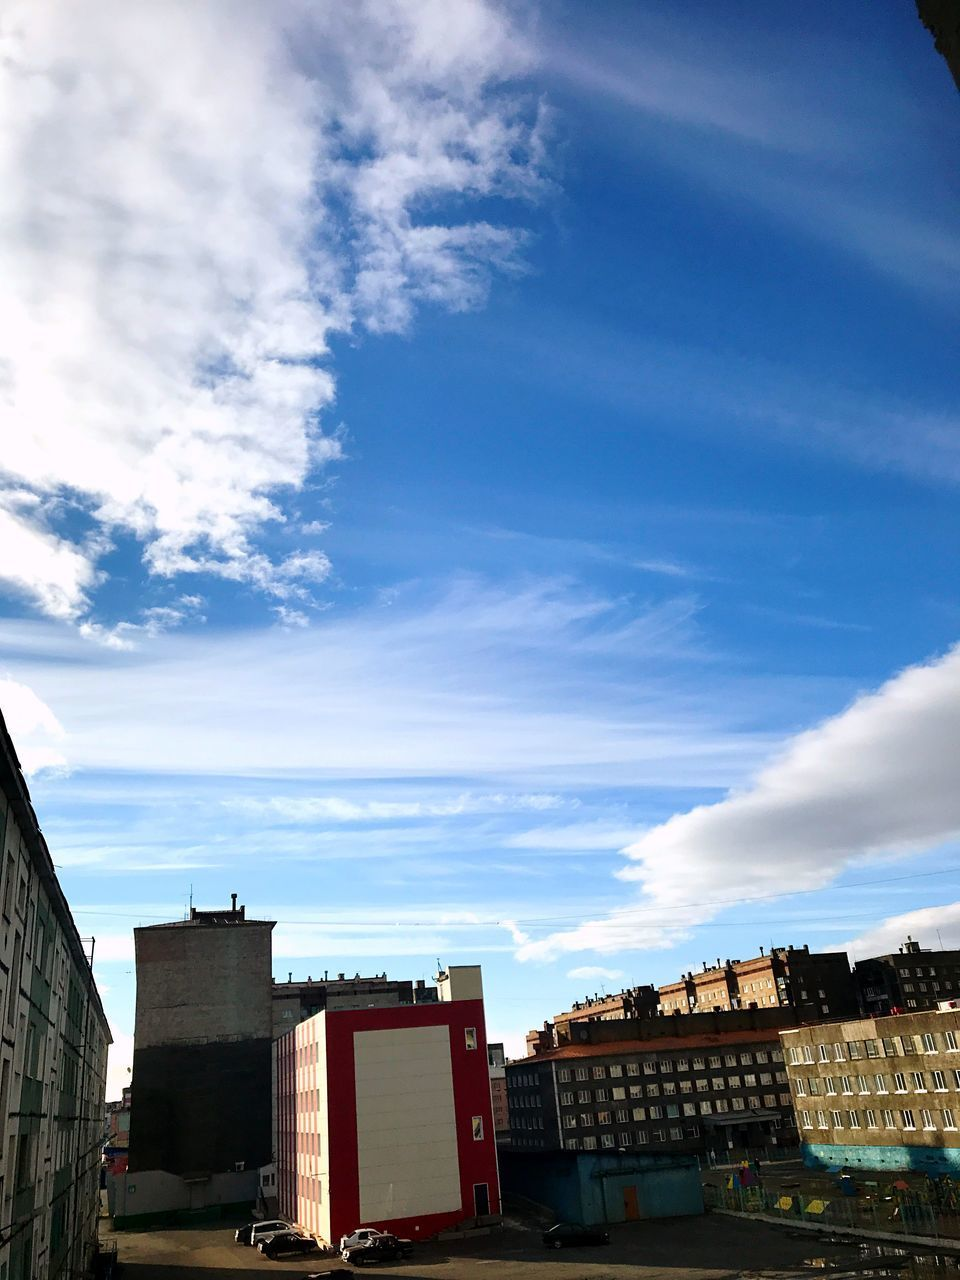 architecture, building exterior, built structure, cloud - sky, sky, building, residential district, city, nature, day, outdoors, no people, low angle view, house, blue, sunlight, city life, town, cityscape, window